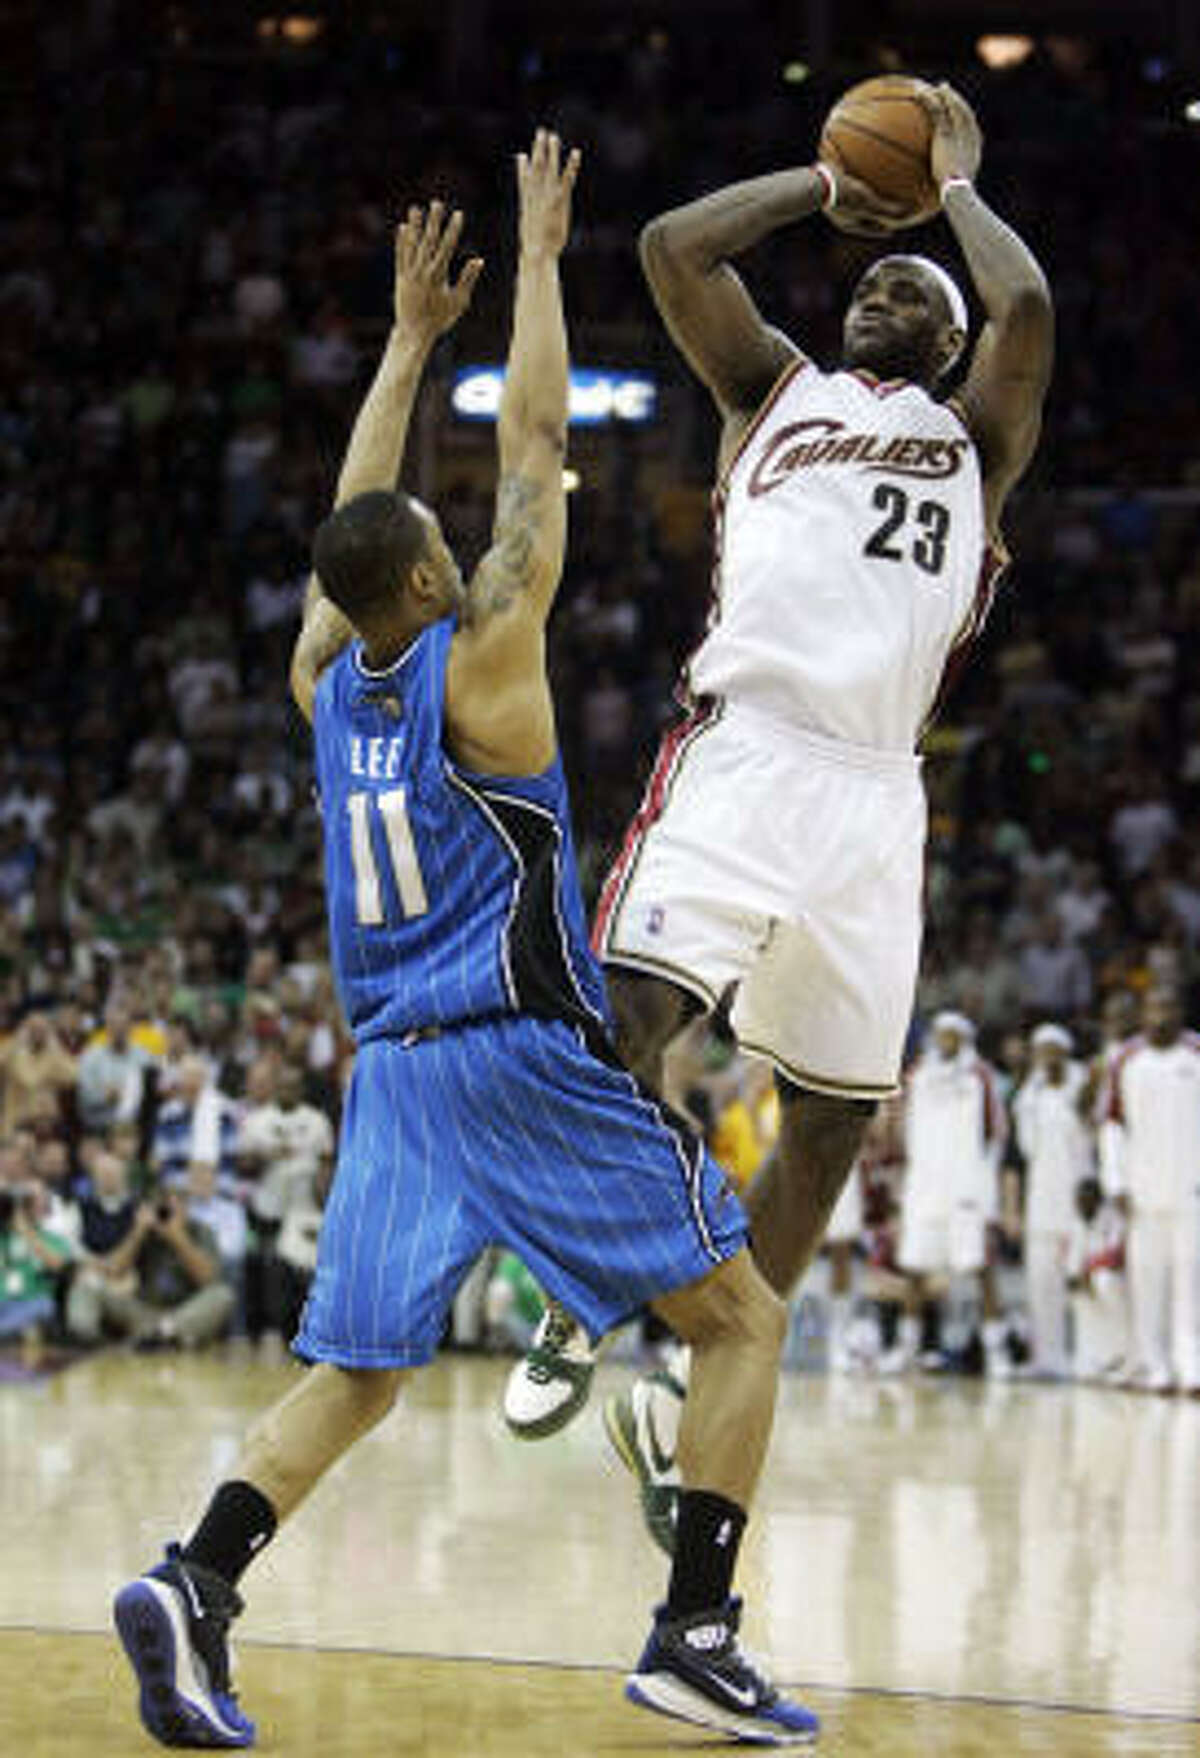 Cavaliers beat Magic 97-93 : Cleveland forward LeBron James, right, is fouled by Orlando Magic guard Courtney Lee late in the fourth quarter on Tuesday in Cleveland. James scored 43 points in the win.